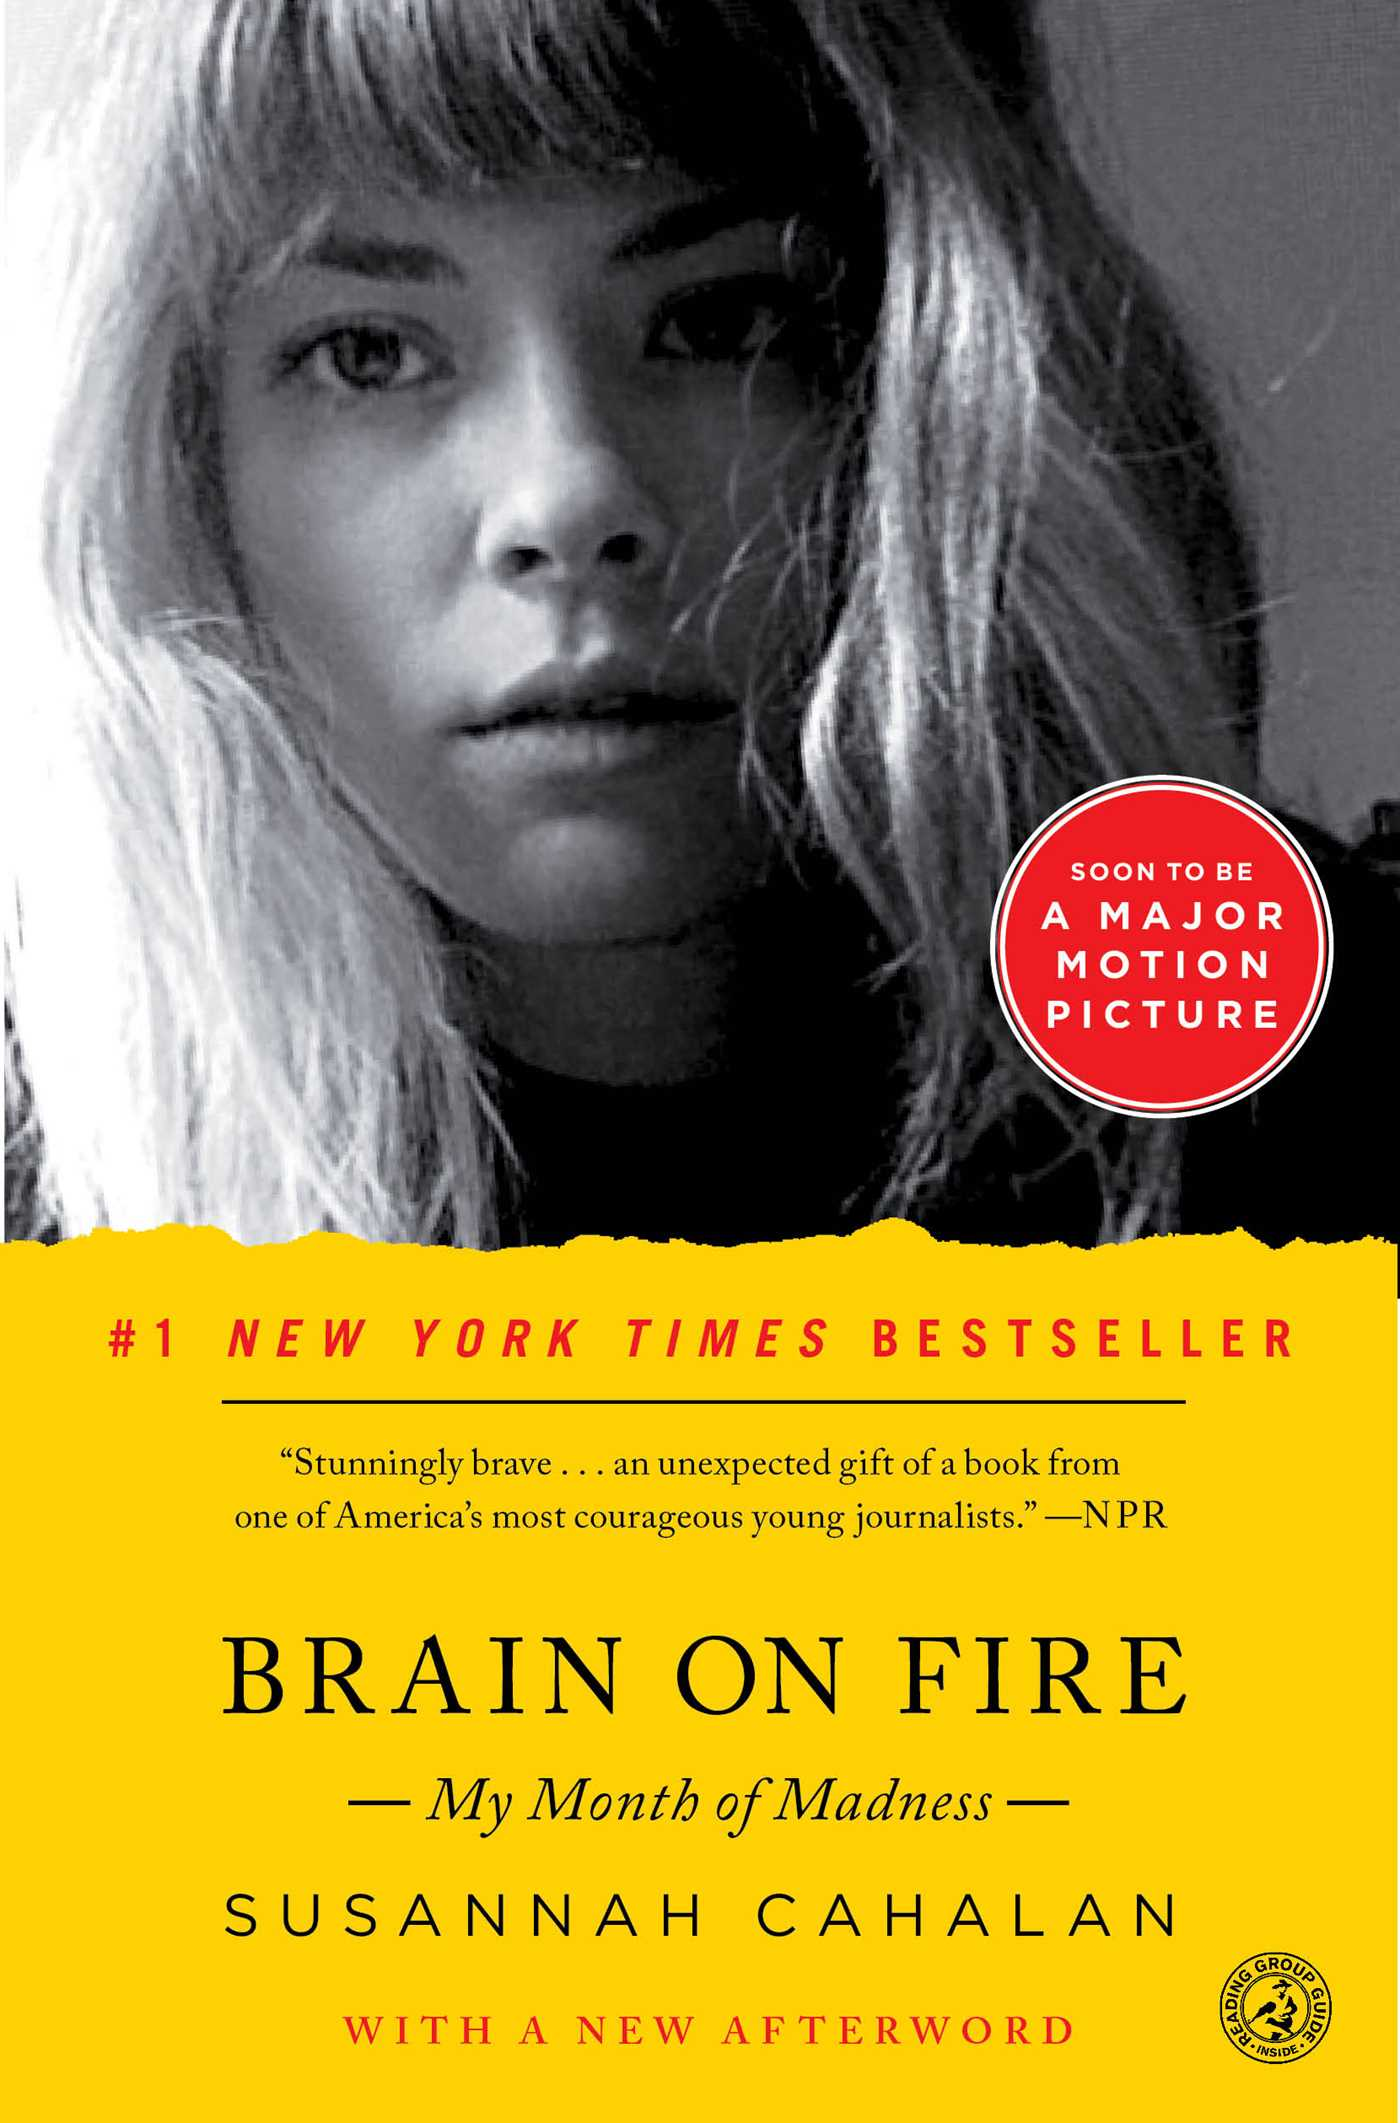 Brain on fire 9781451621389 hr